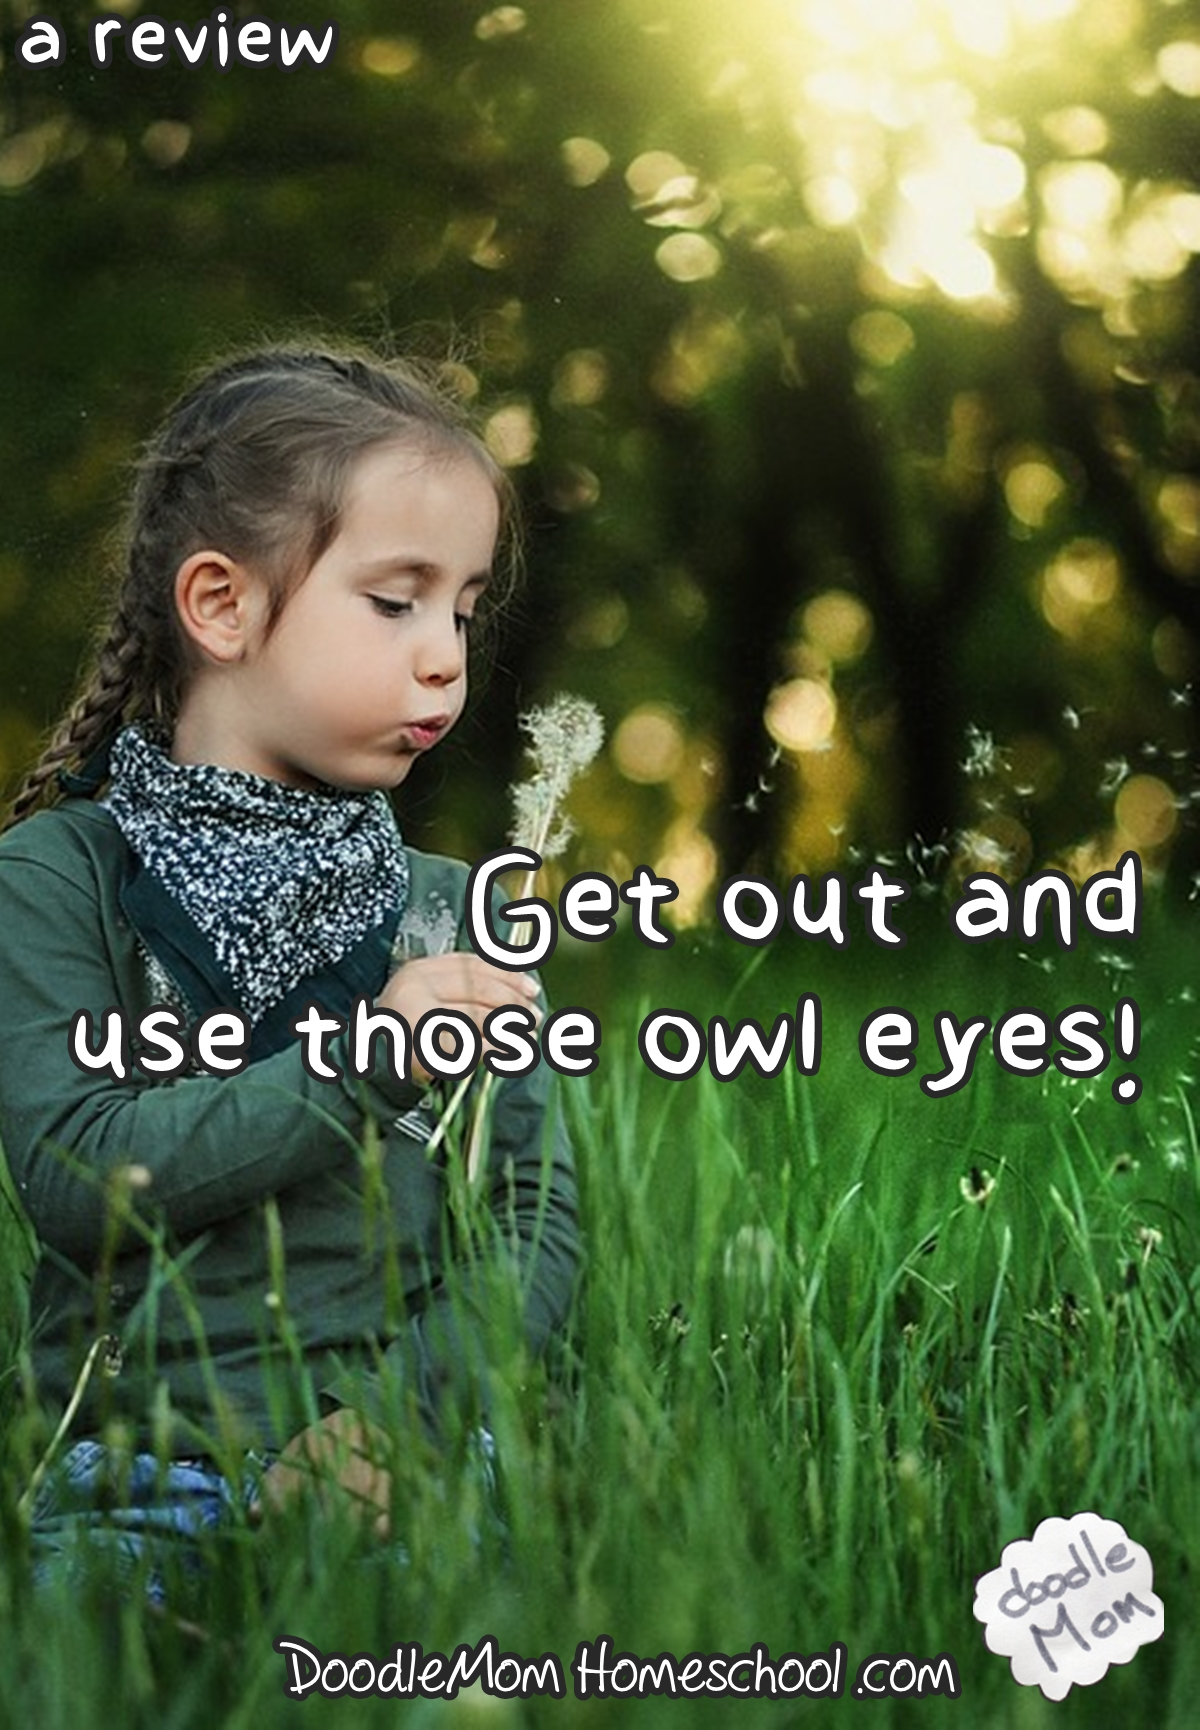 Get out and use those owl eyes